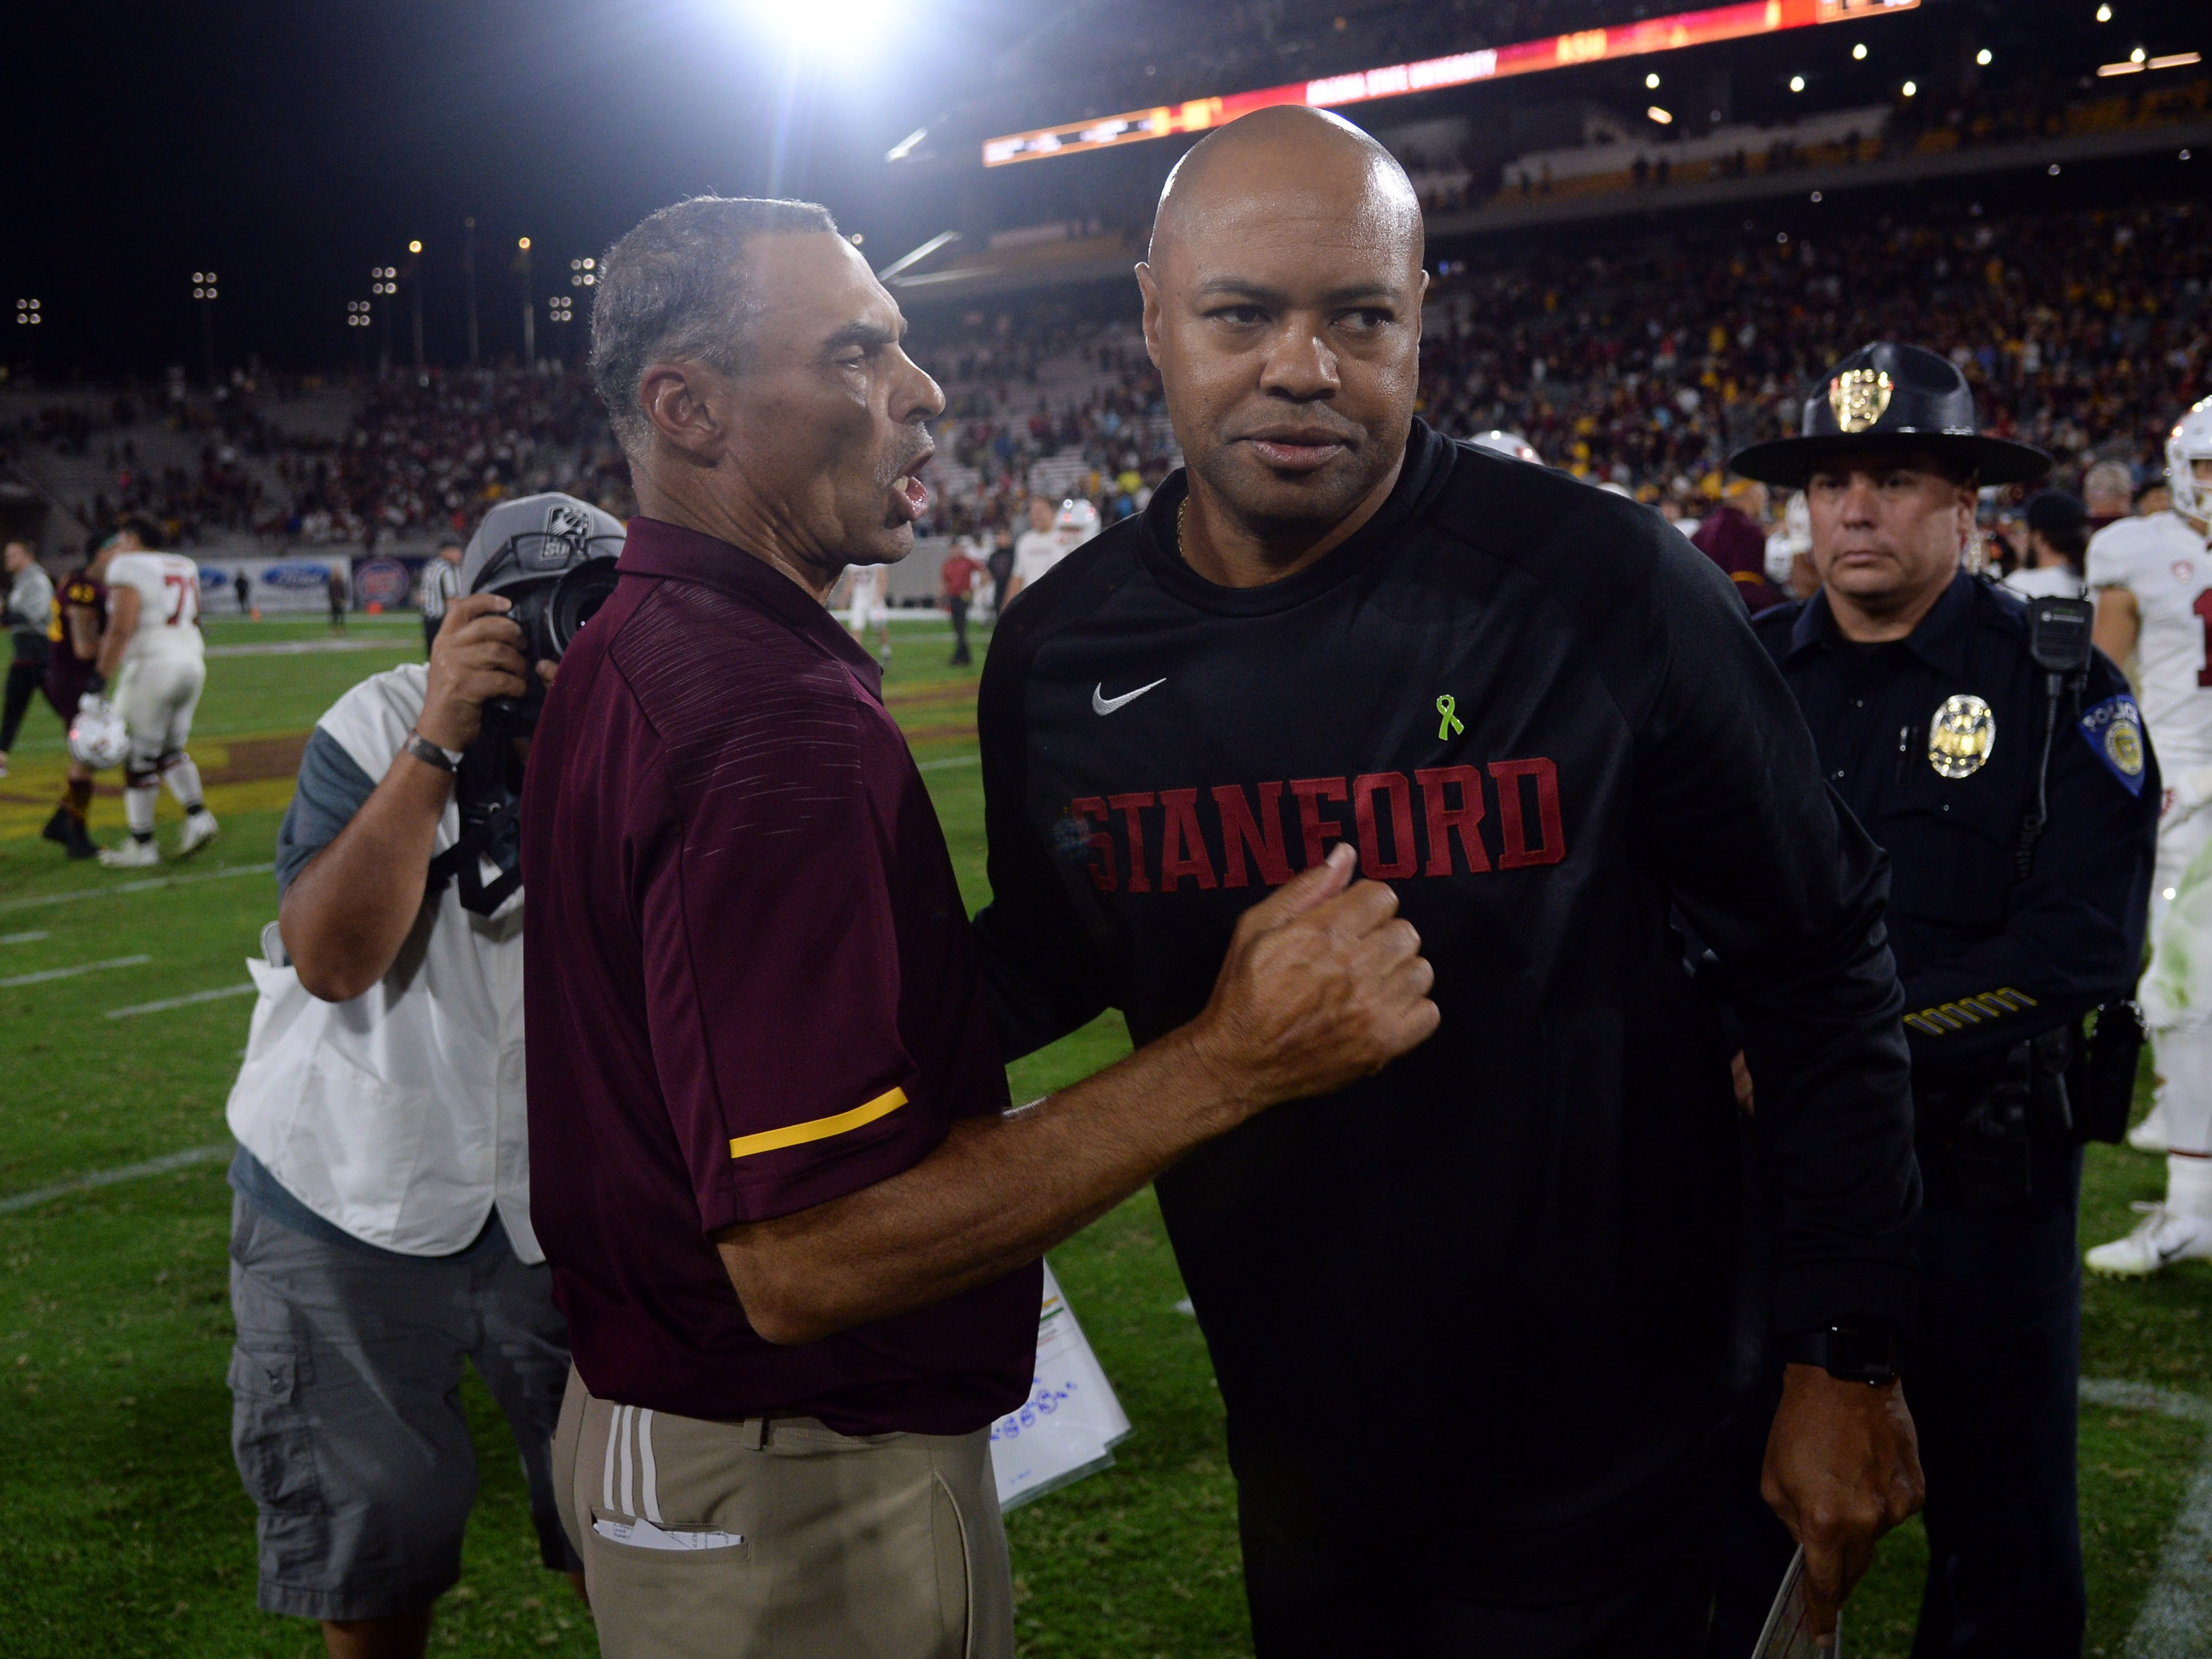 Oct 18, 2018; Tempe, AZ, USA; Arizona State Sun Devils head coach Herm Edwards (left) and Stanford Cardinal head coach David Shaw (right) shake hands after the game at Sun Devil Stadium.